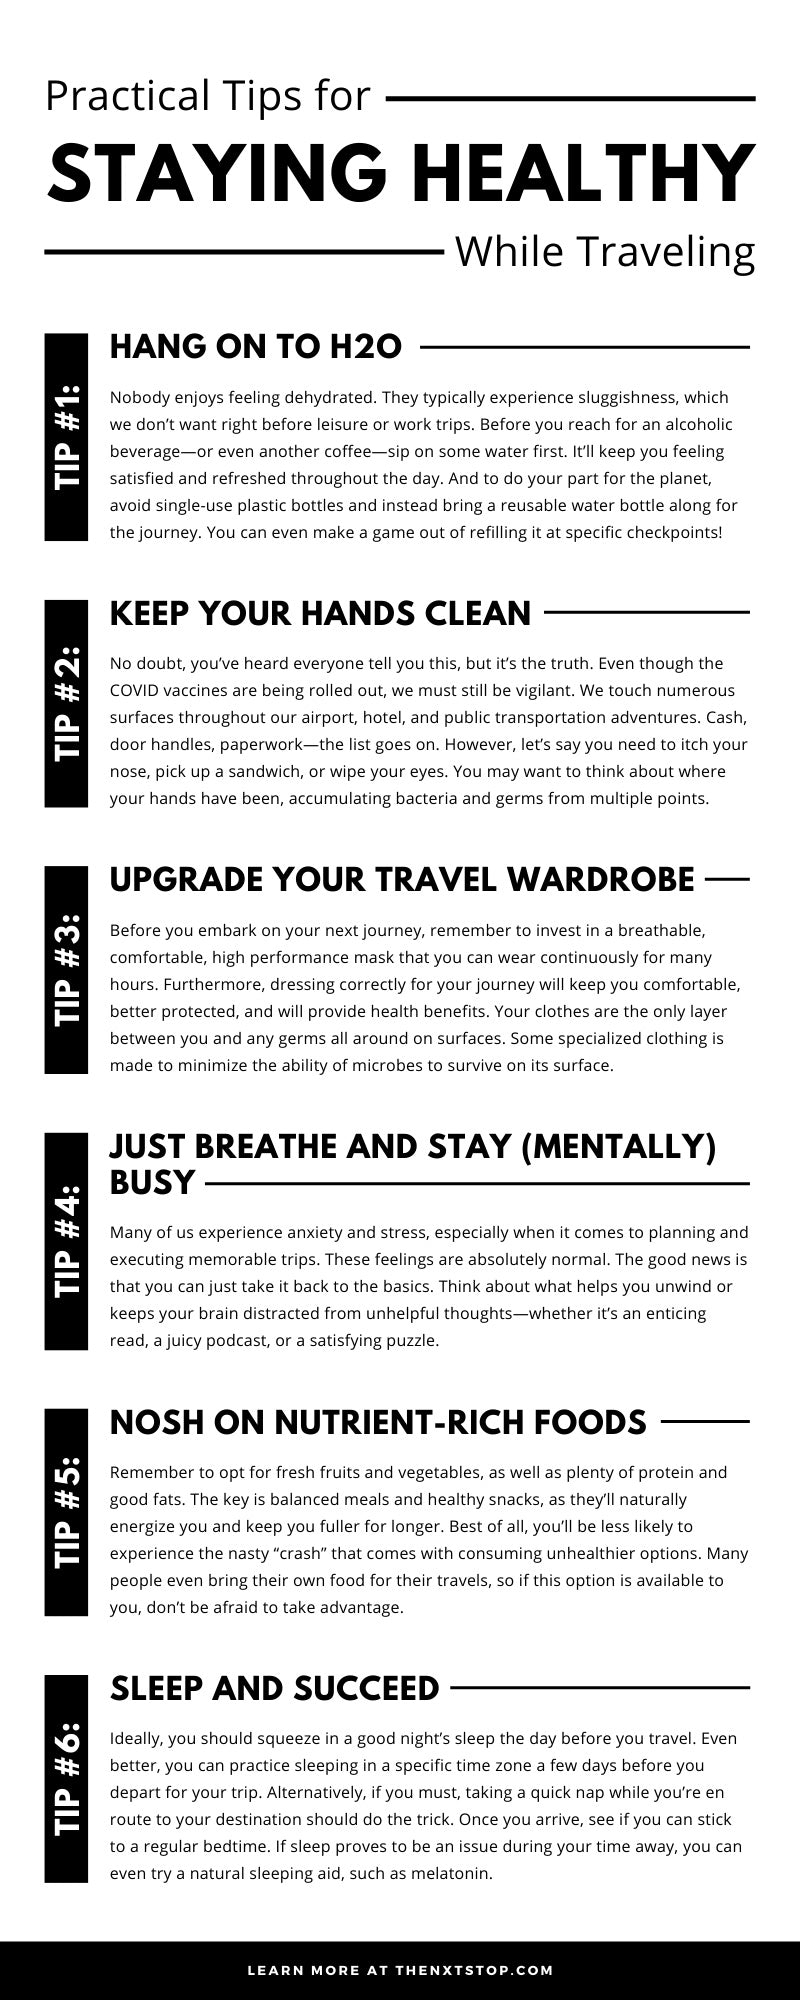 Practical Tips for Staying Healthy While Traveling